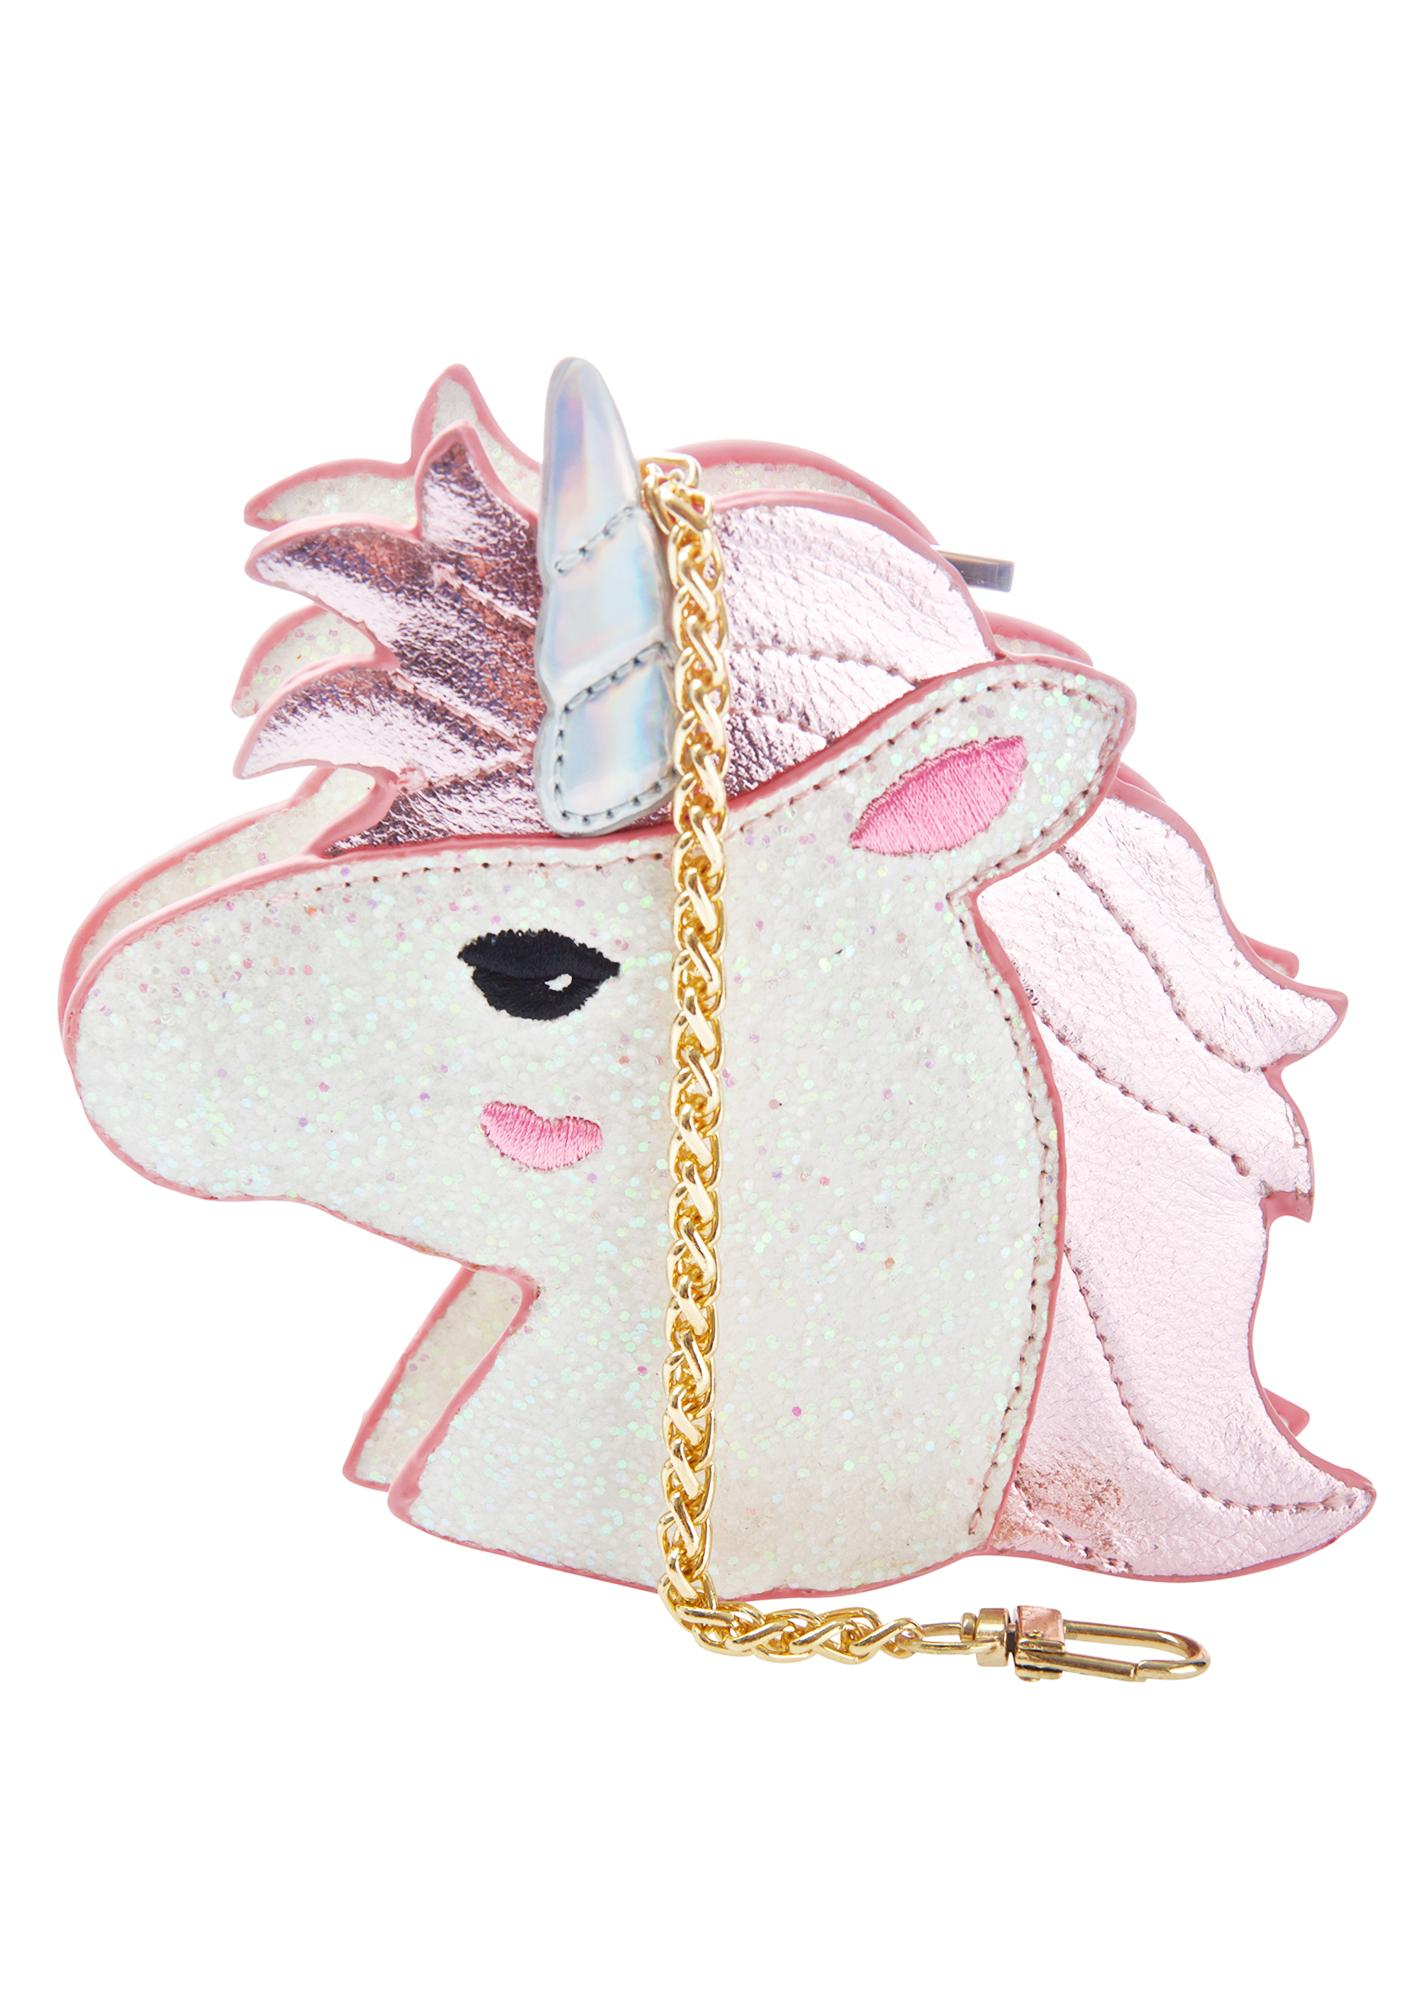 Skinnydip Unicorn Coin Purse